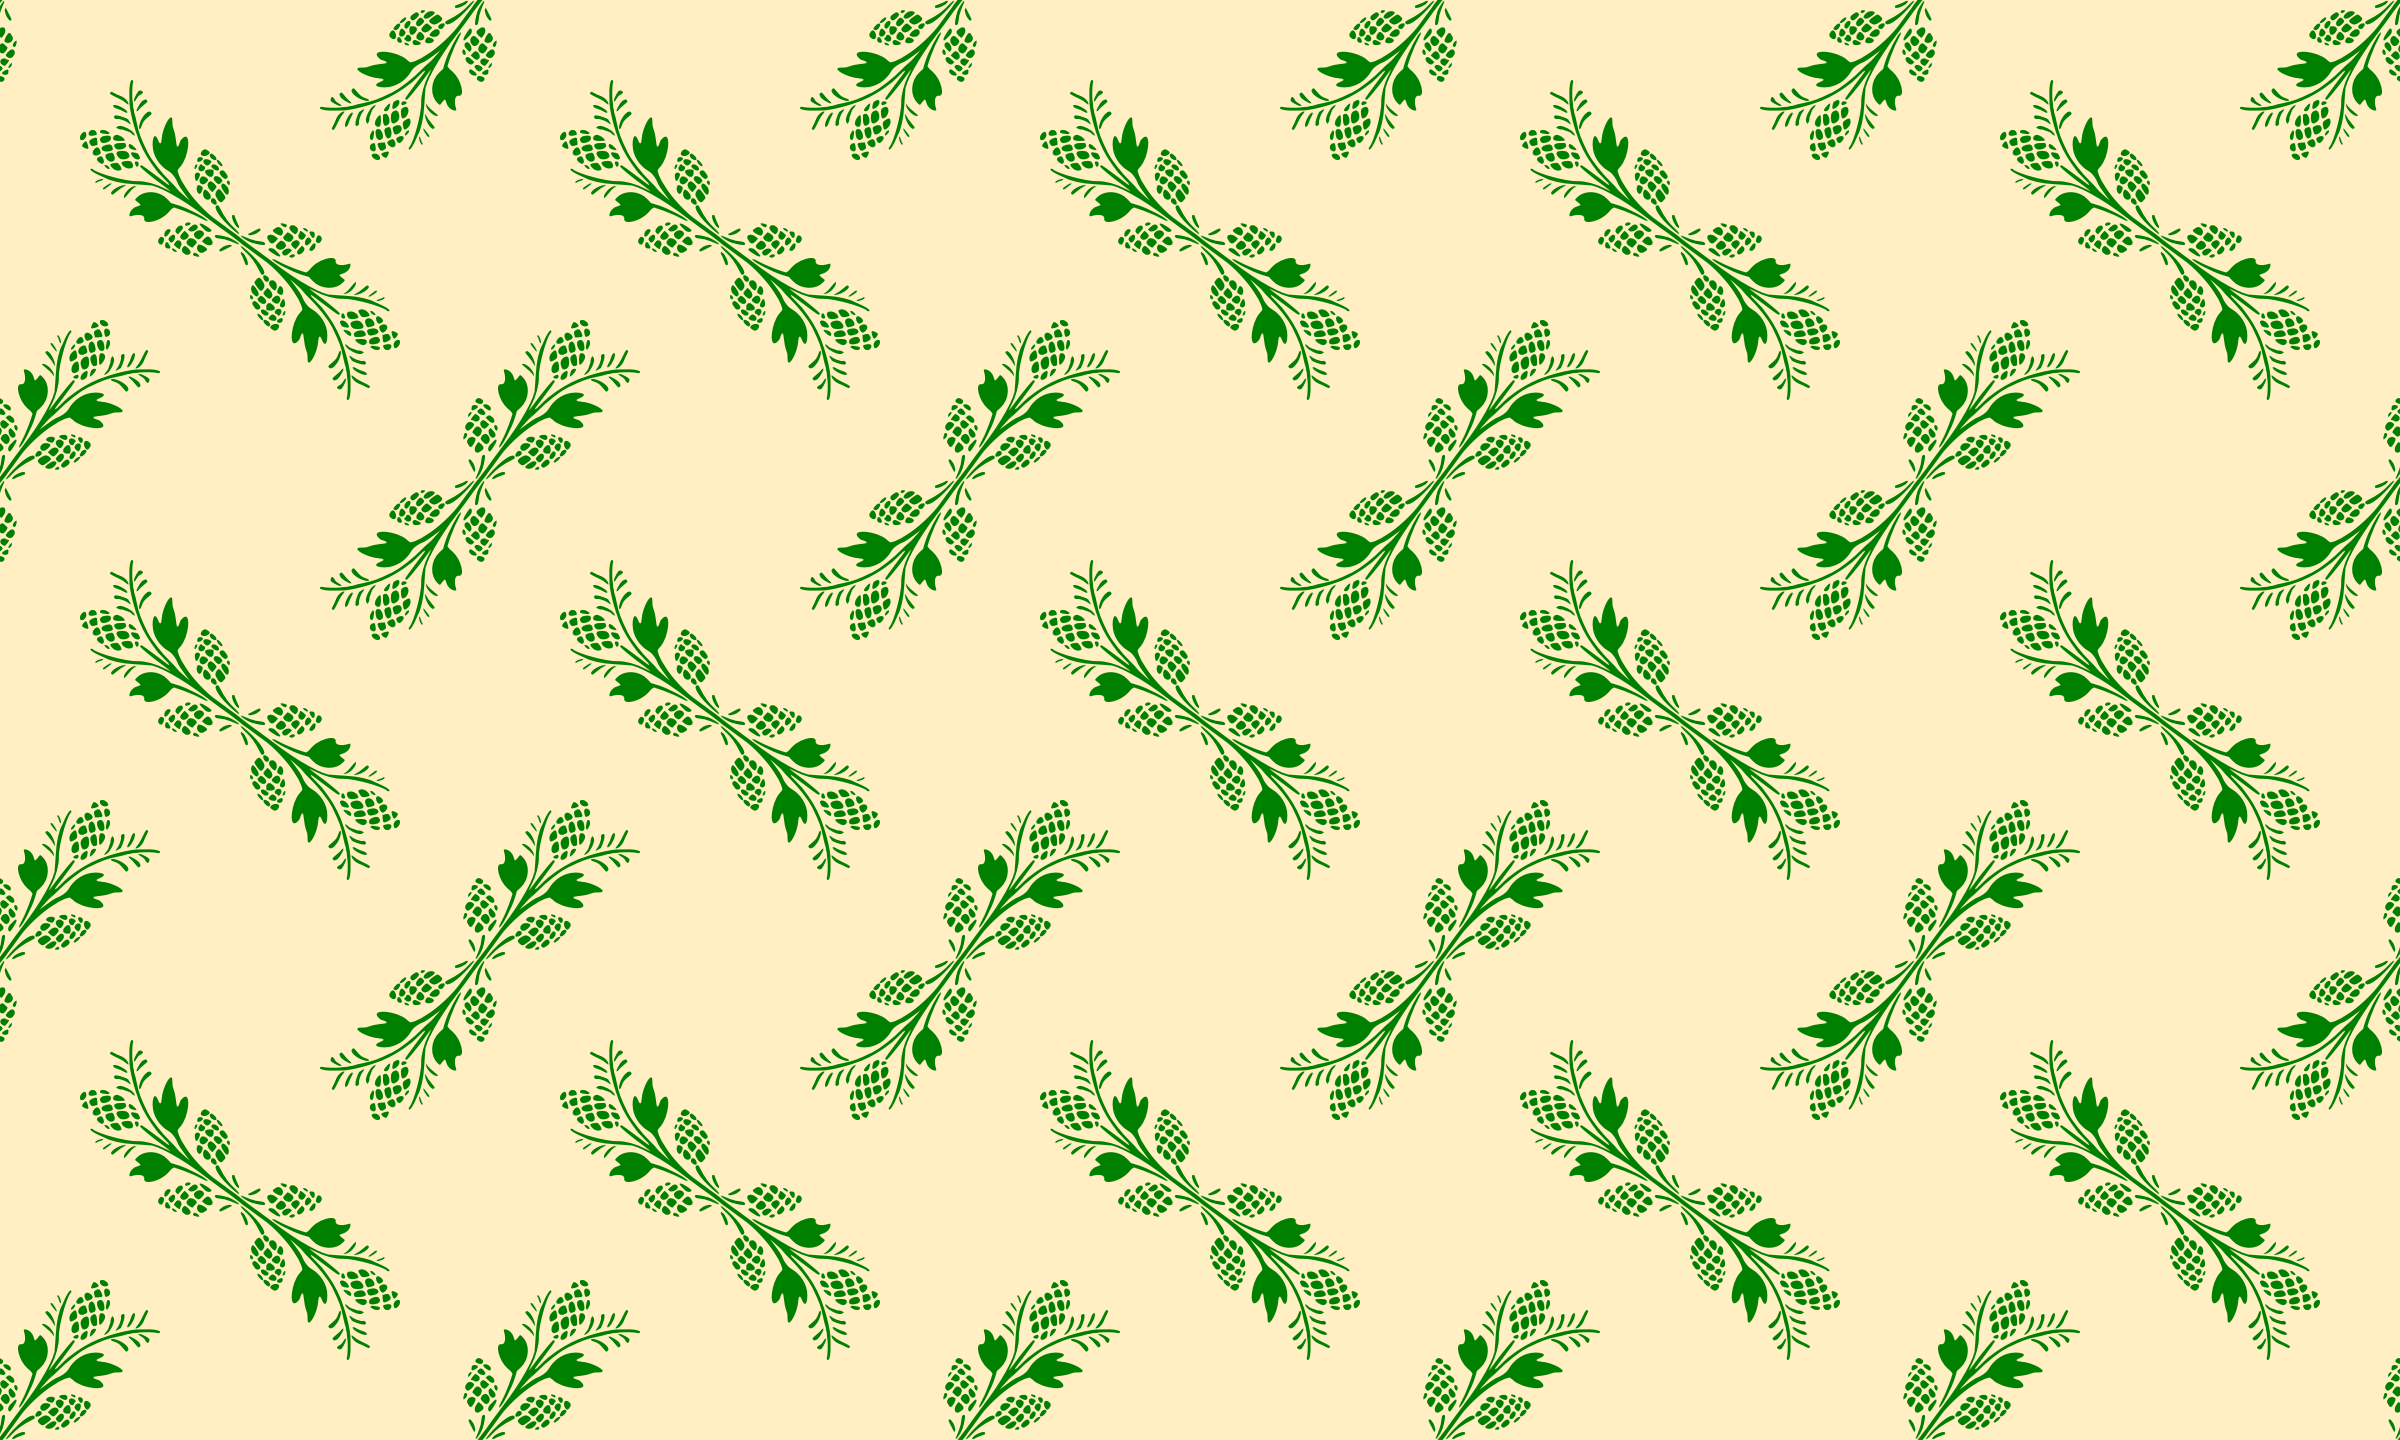 Floral background 10 by Firkin